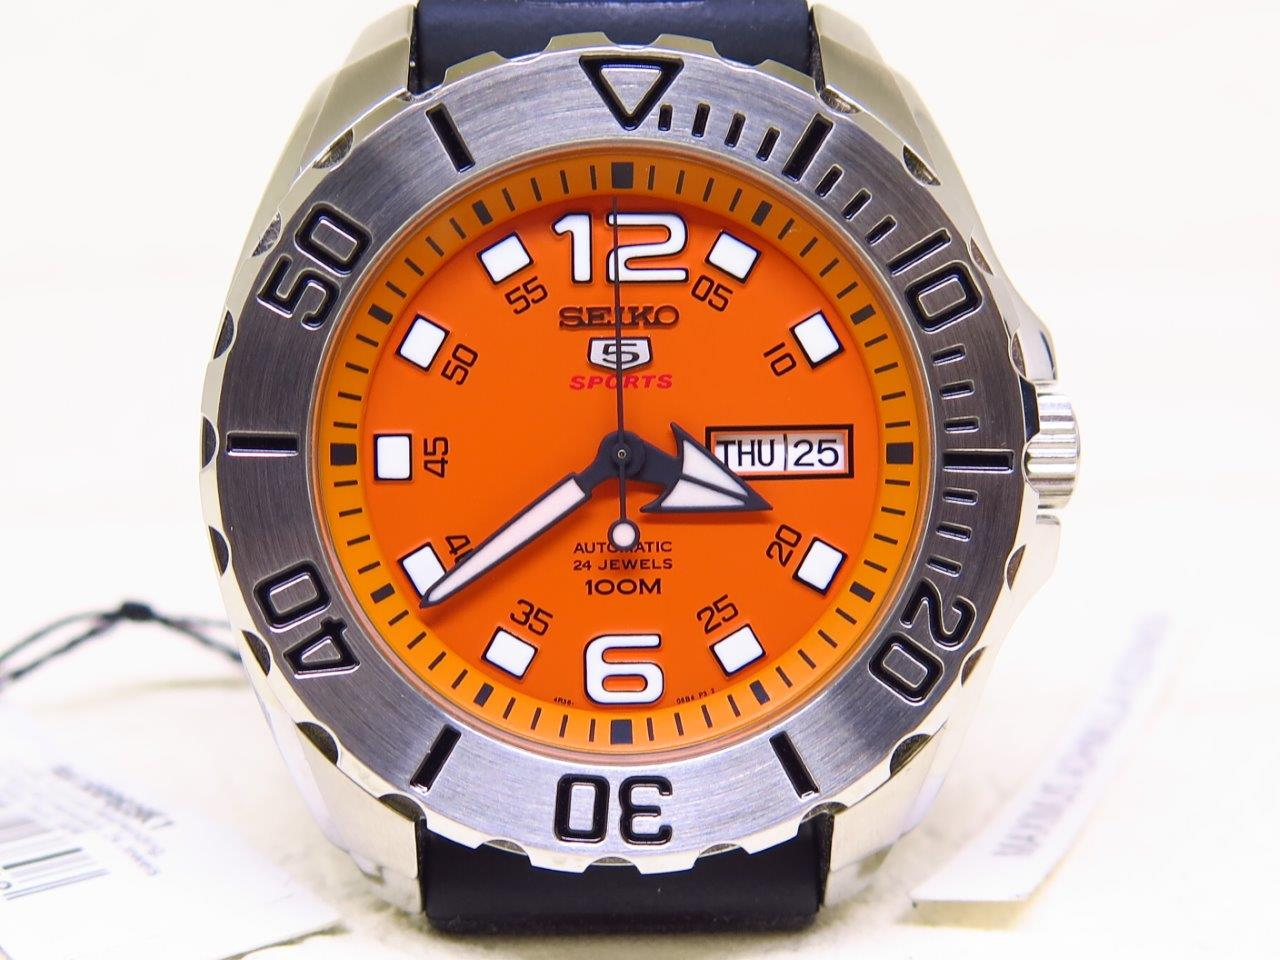 SEIKO 5 SPORTS ORANGE BABY MONSTER - SEIKO SRPB39K1 - AUTOMATIC 4R36A